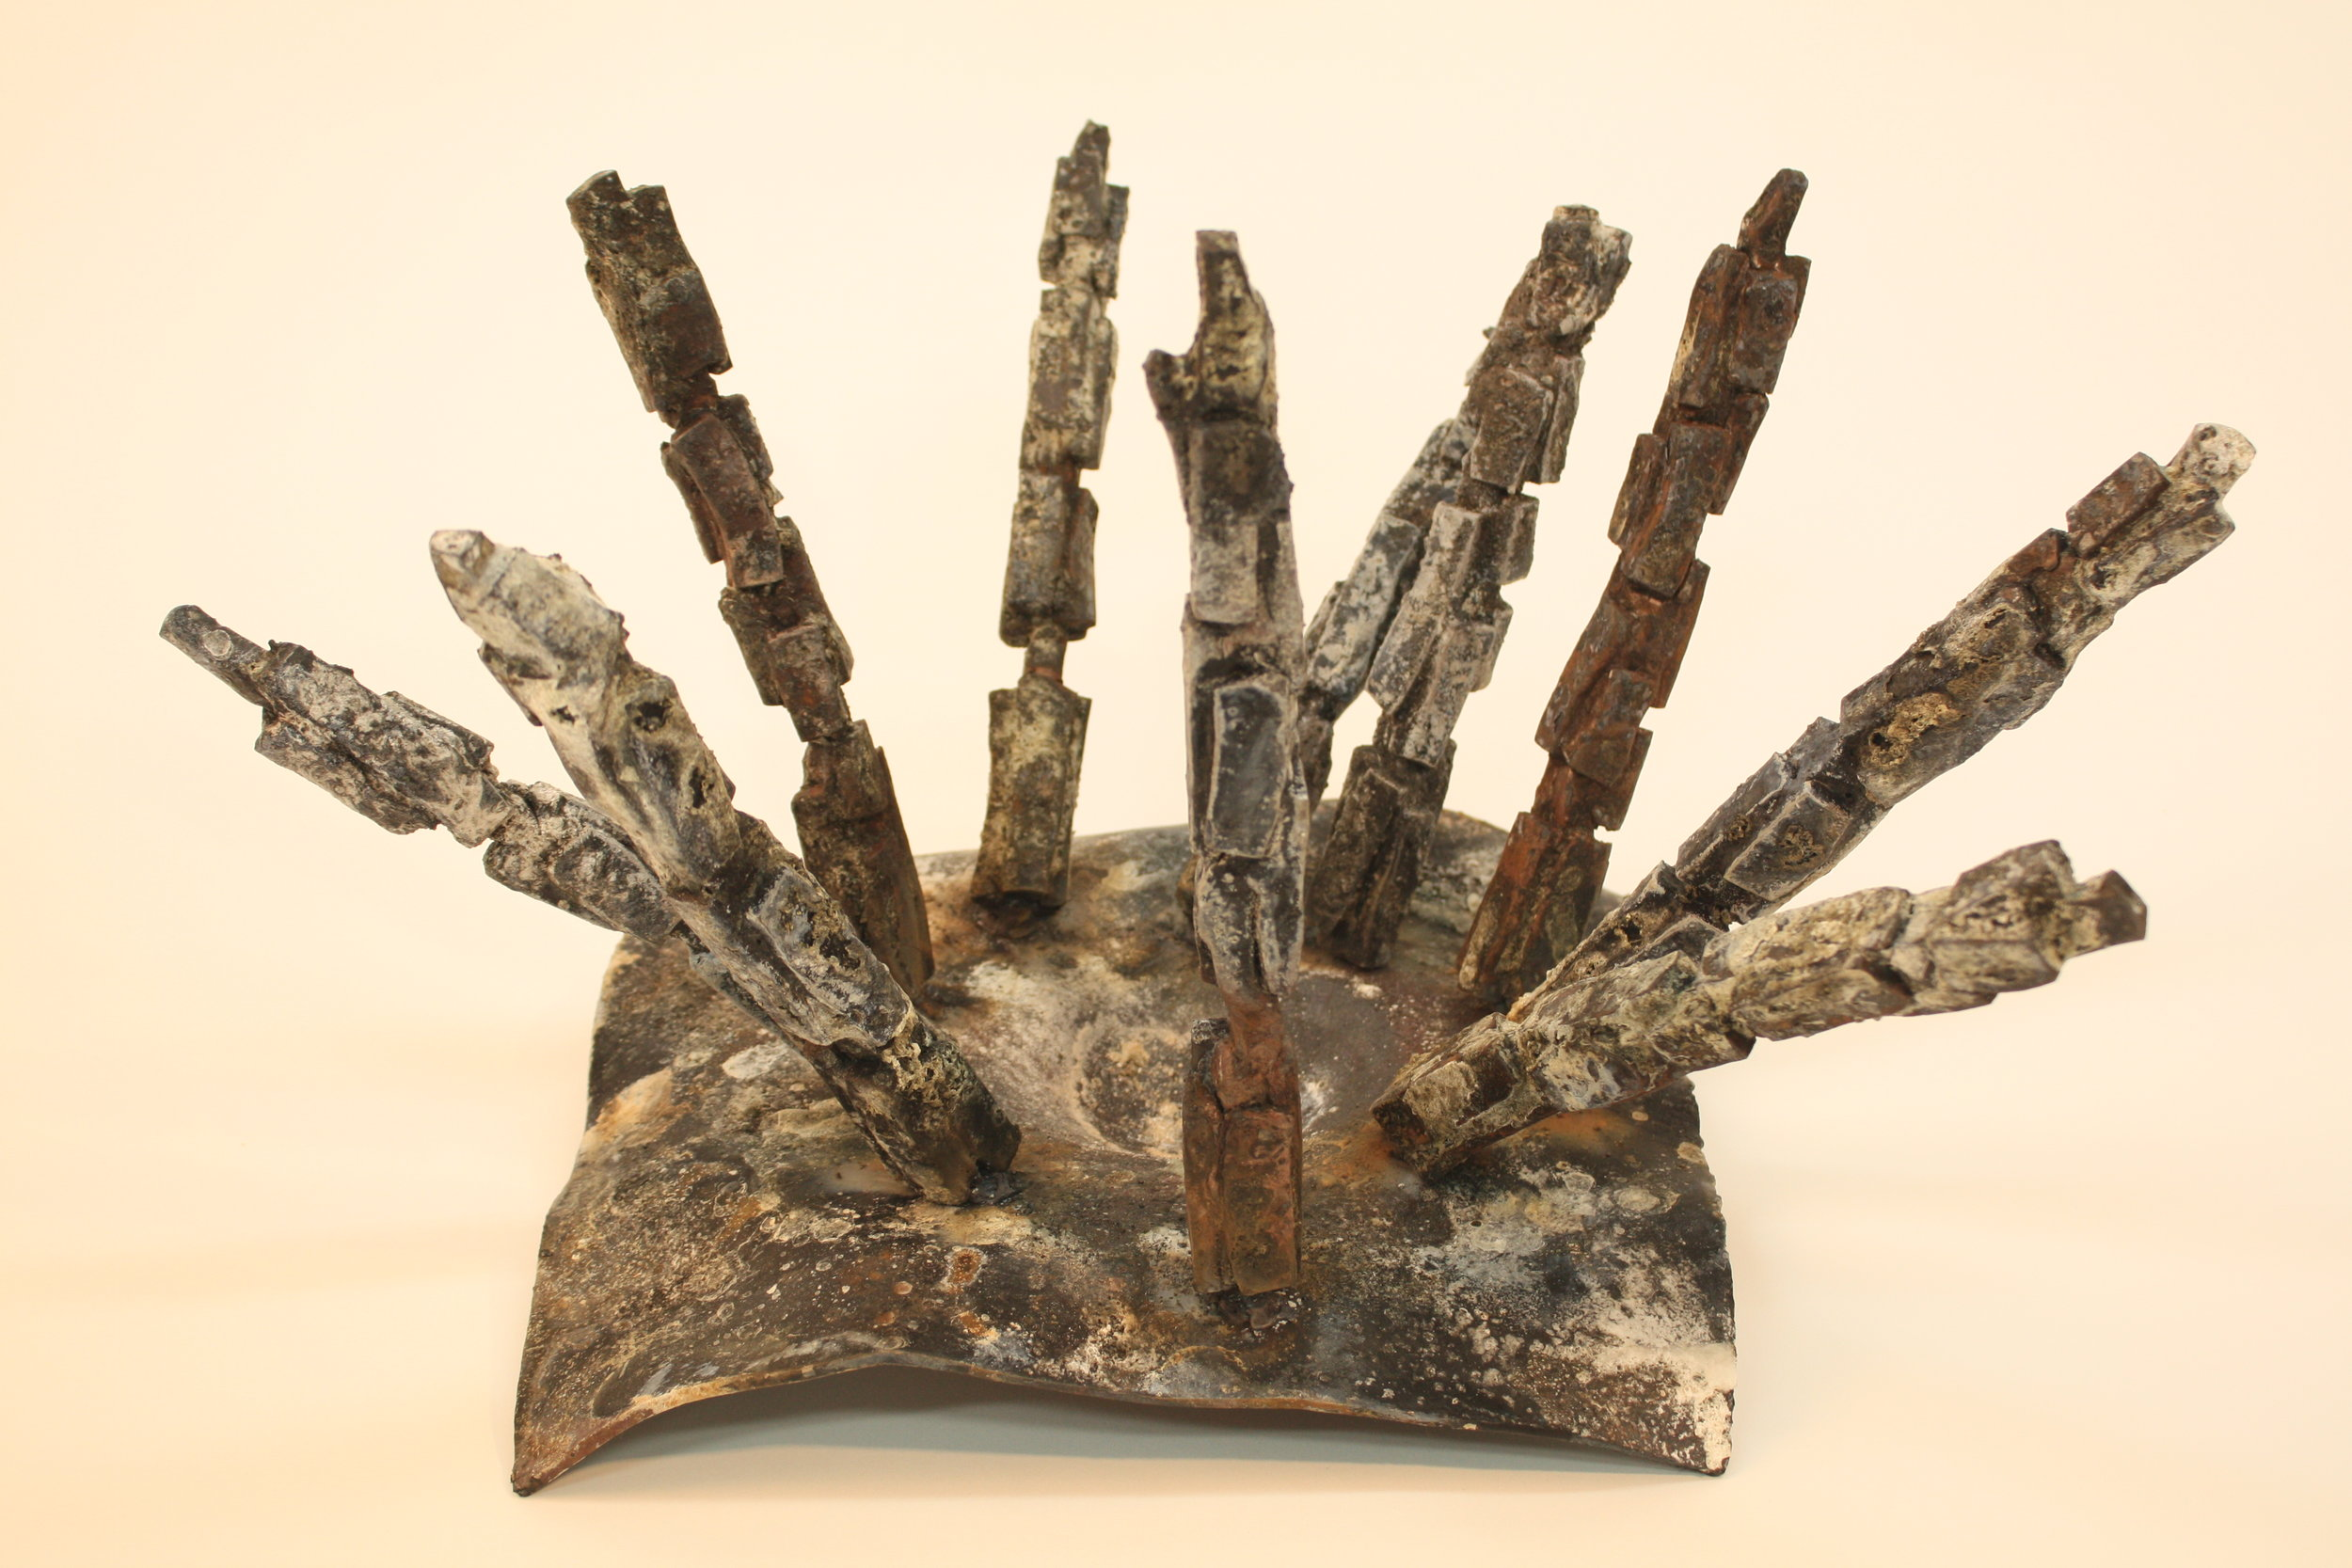 Fallout - 2017Forged steel and Borax45 x 53 x 33cm